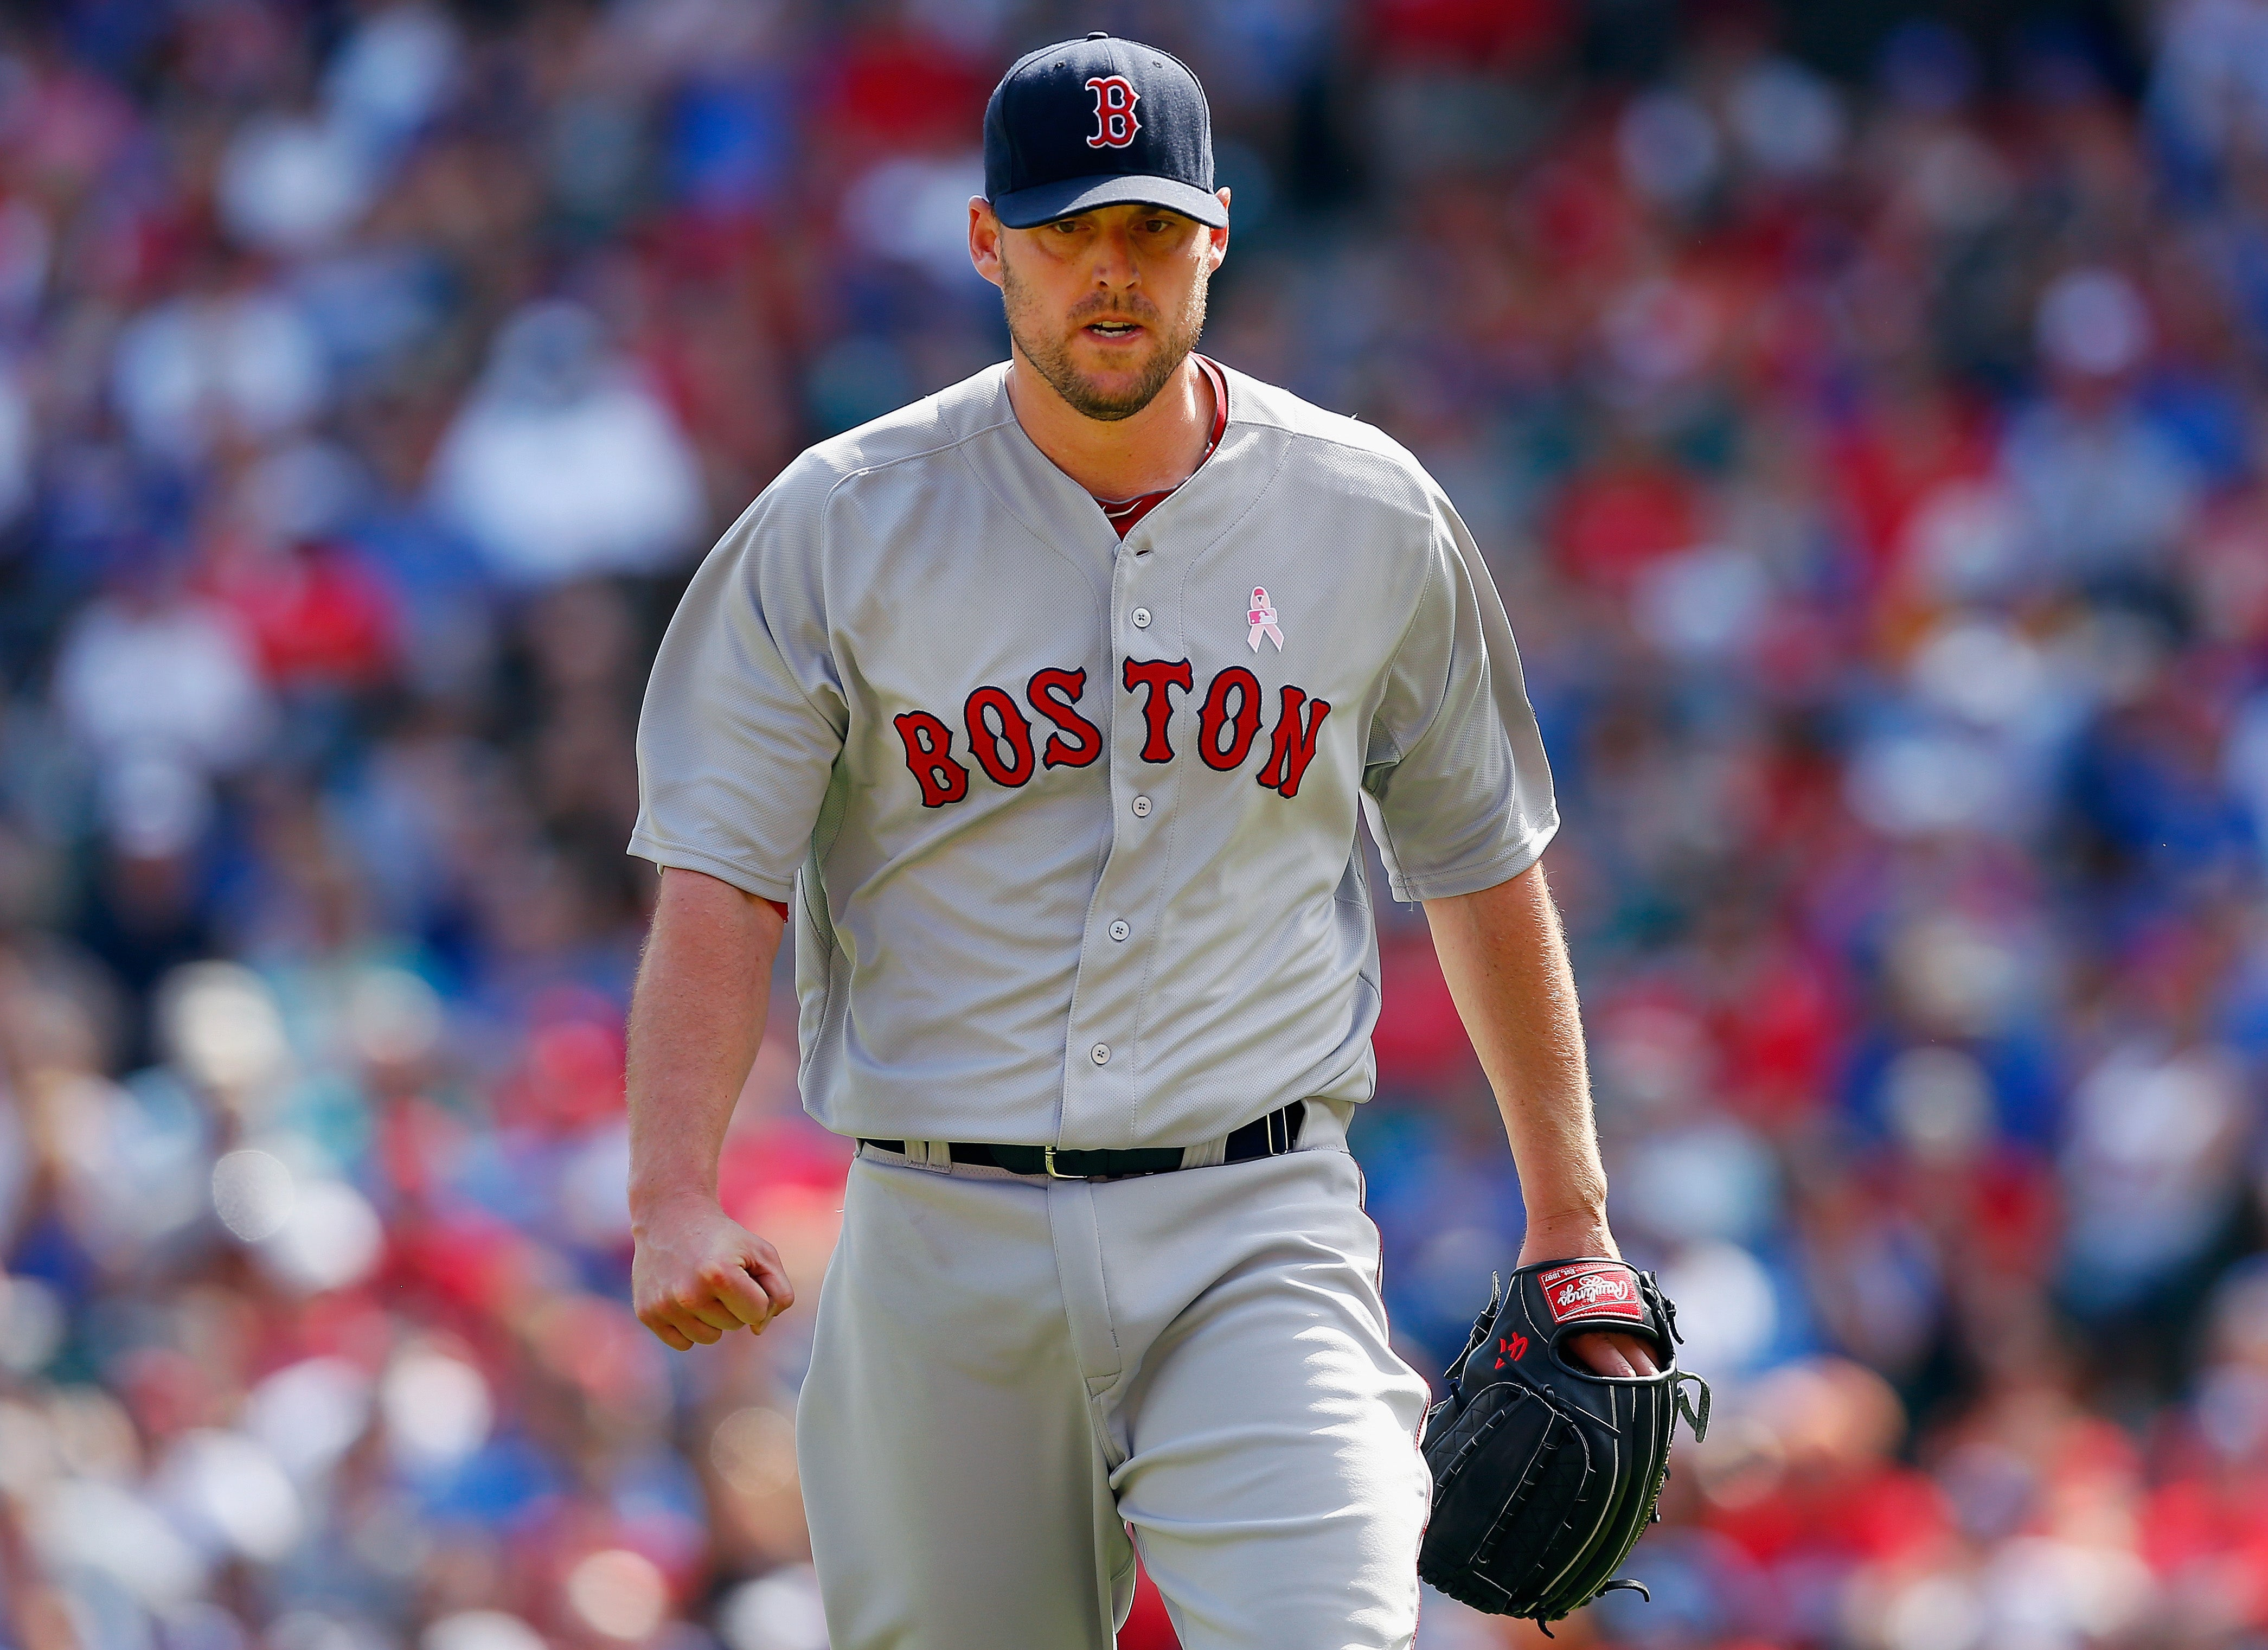 John Lackey had his ups and downs with the Red Sox, but ultimately gained redemption with his performance in the 2013 postseason.